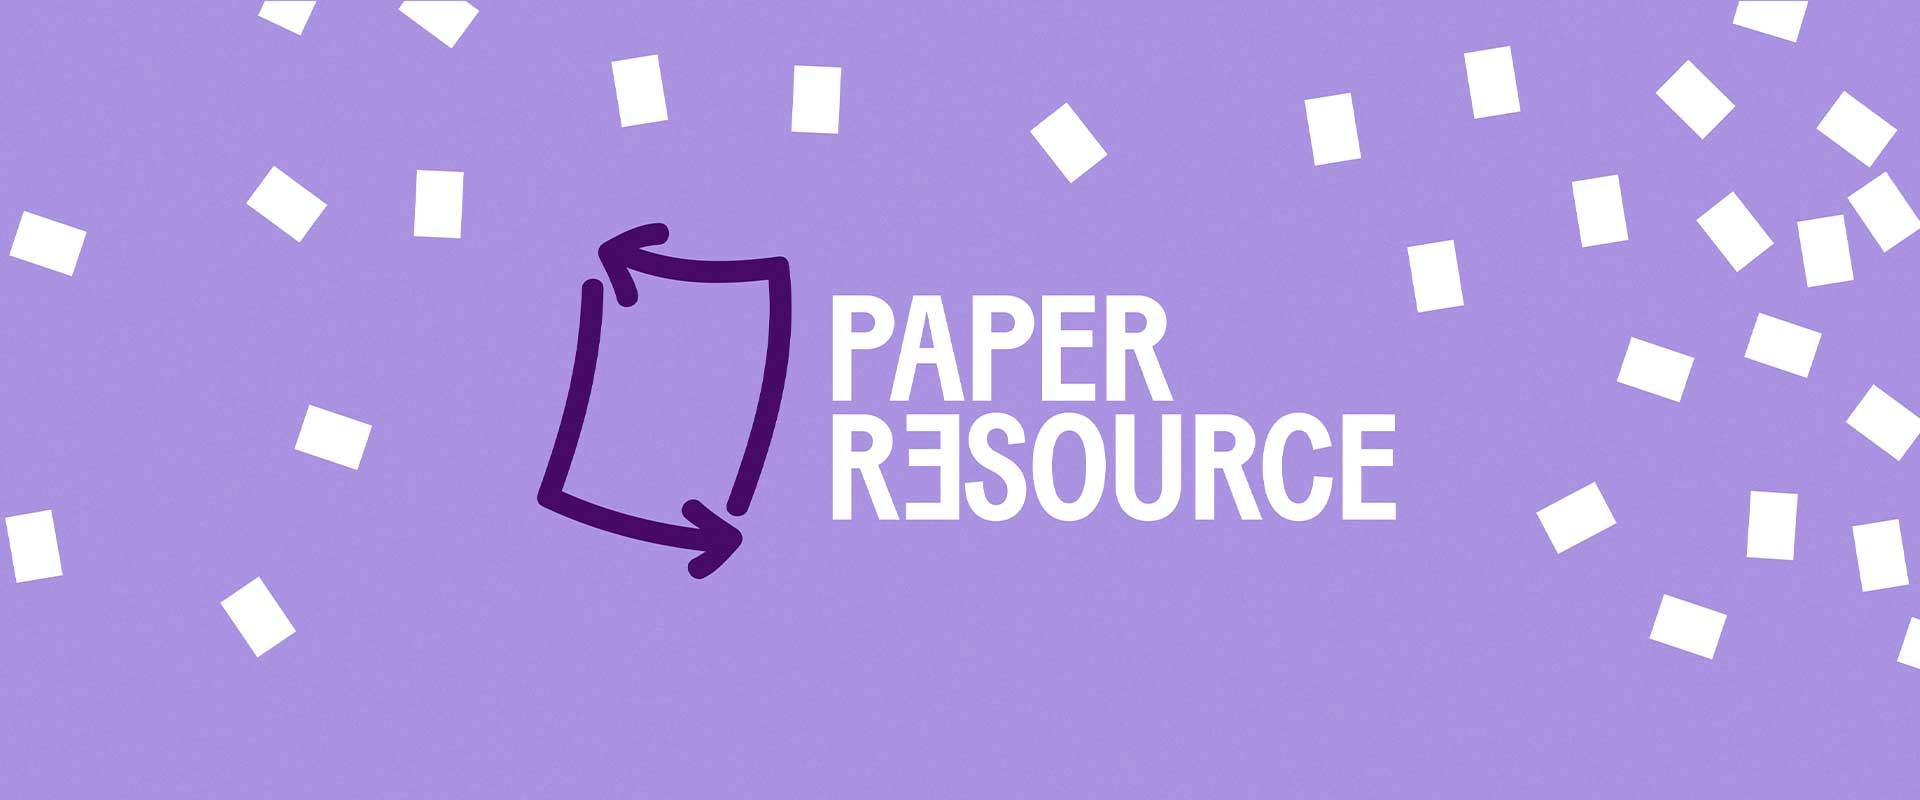 Brand Agency Percept Creates Branding for New Company Paper Resource